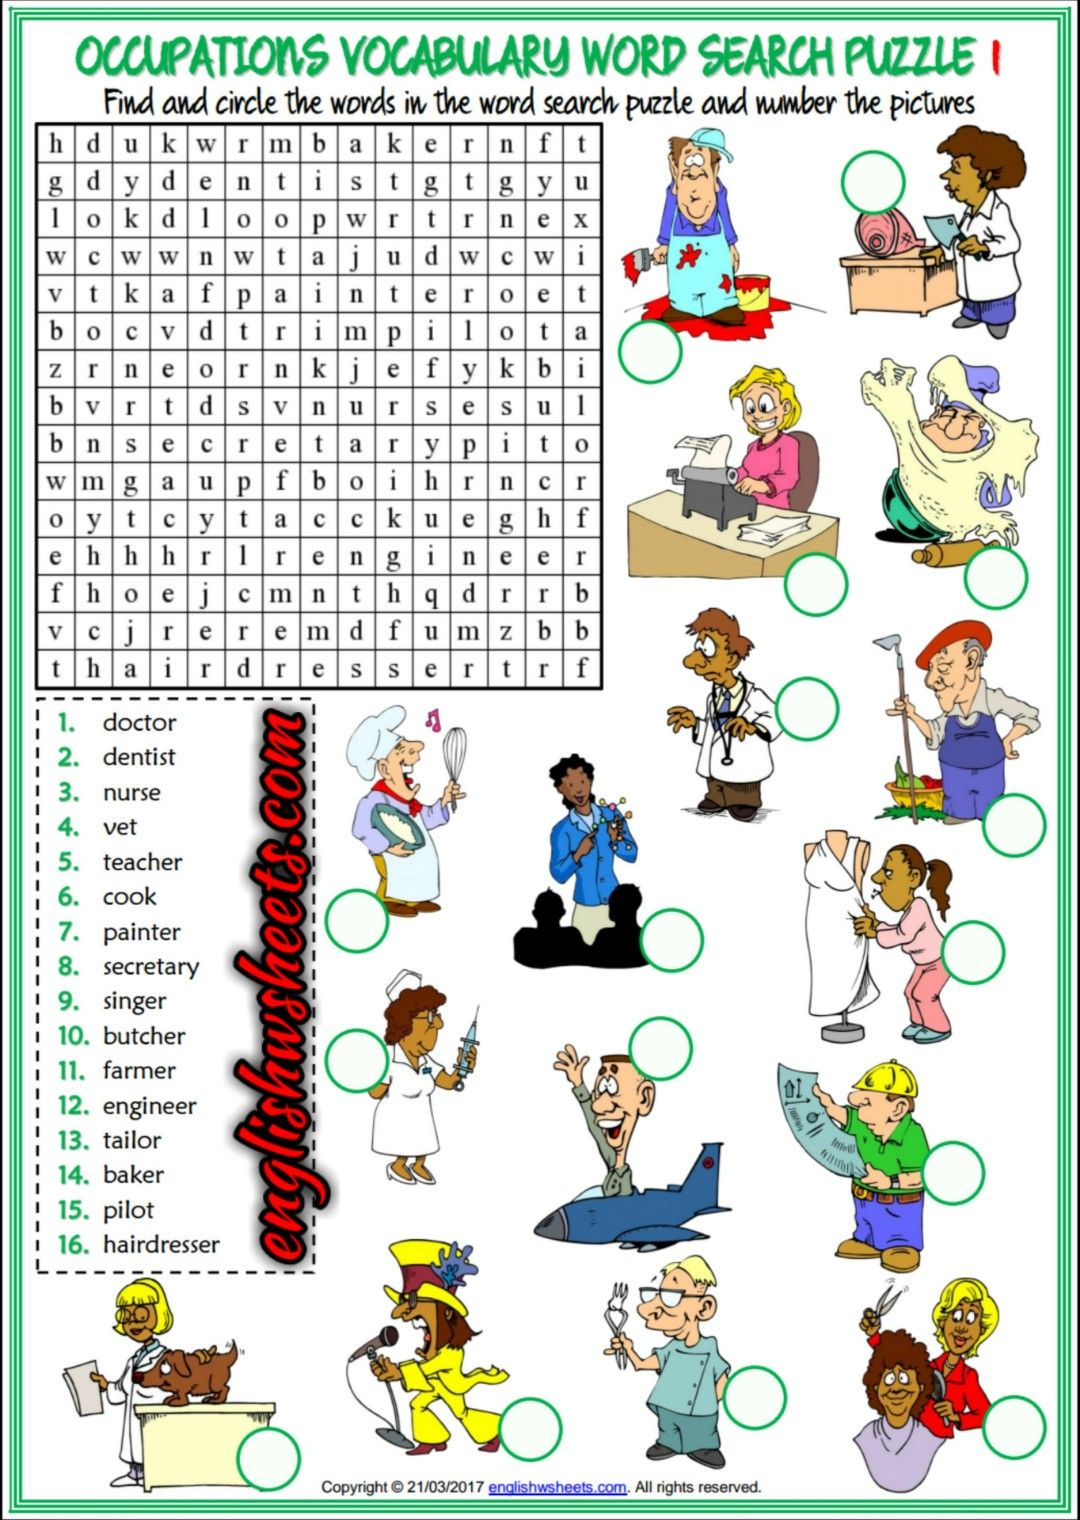 Jobs Occupations Professions Esl Printable Word Search Puzzle Worksheets For Kids